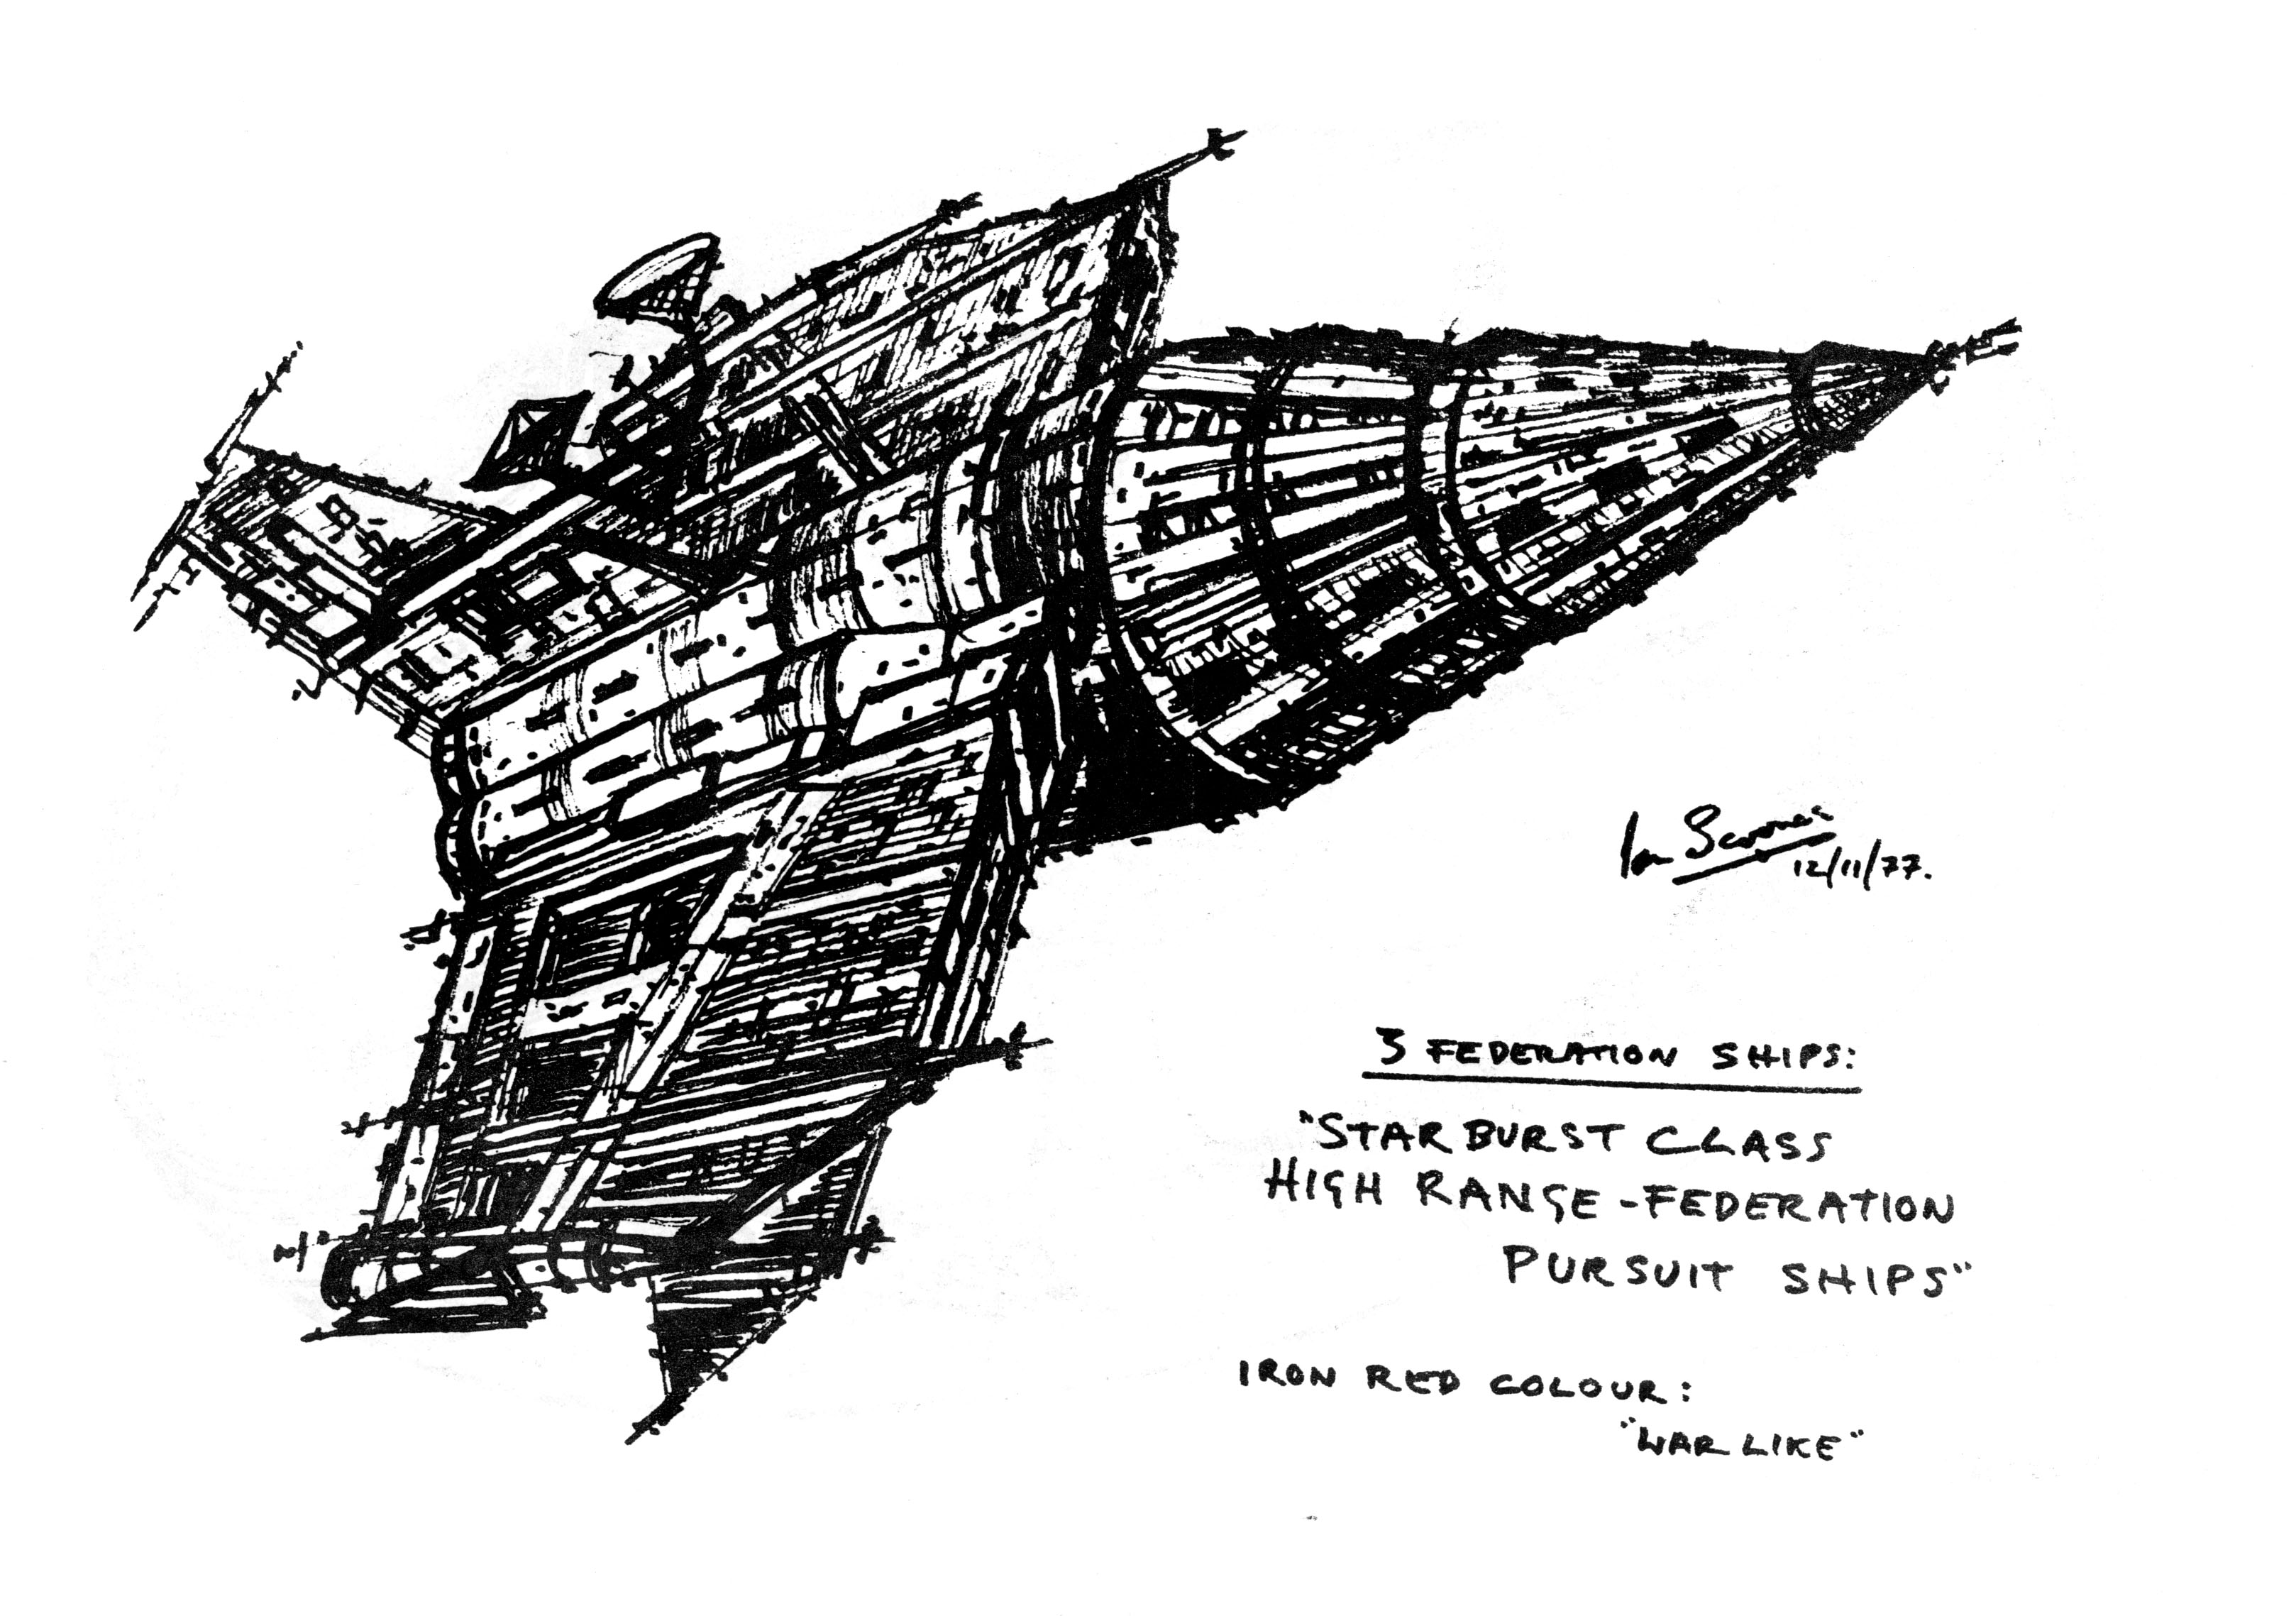 Pursuit Ship design sketch